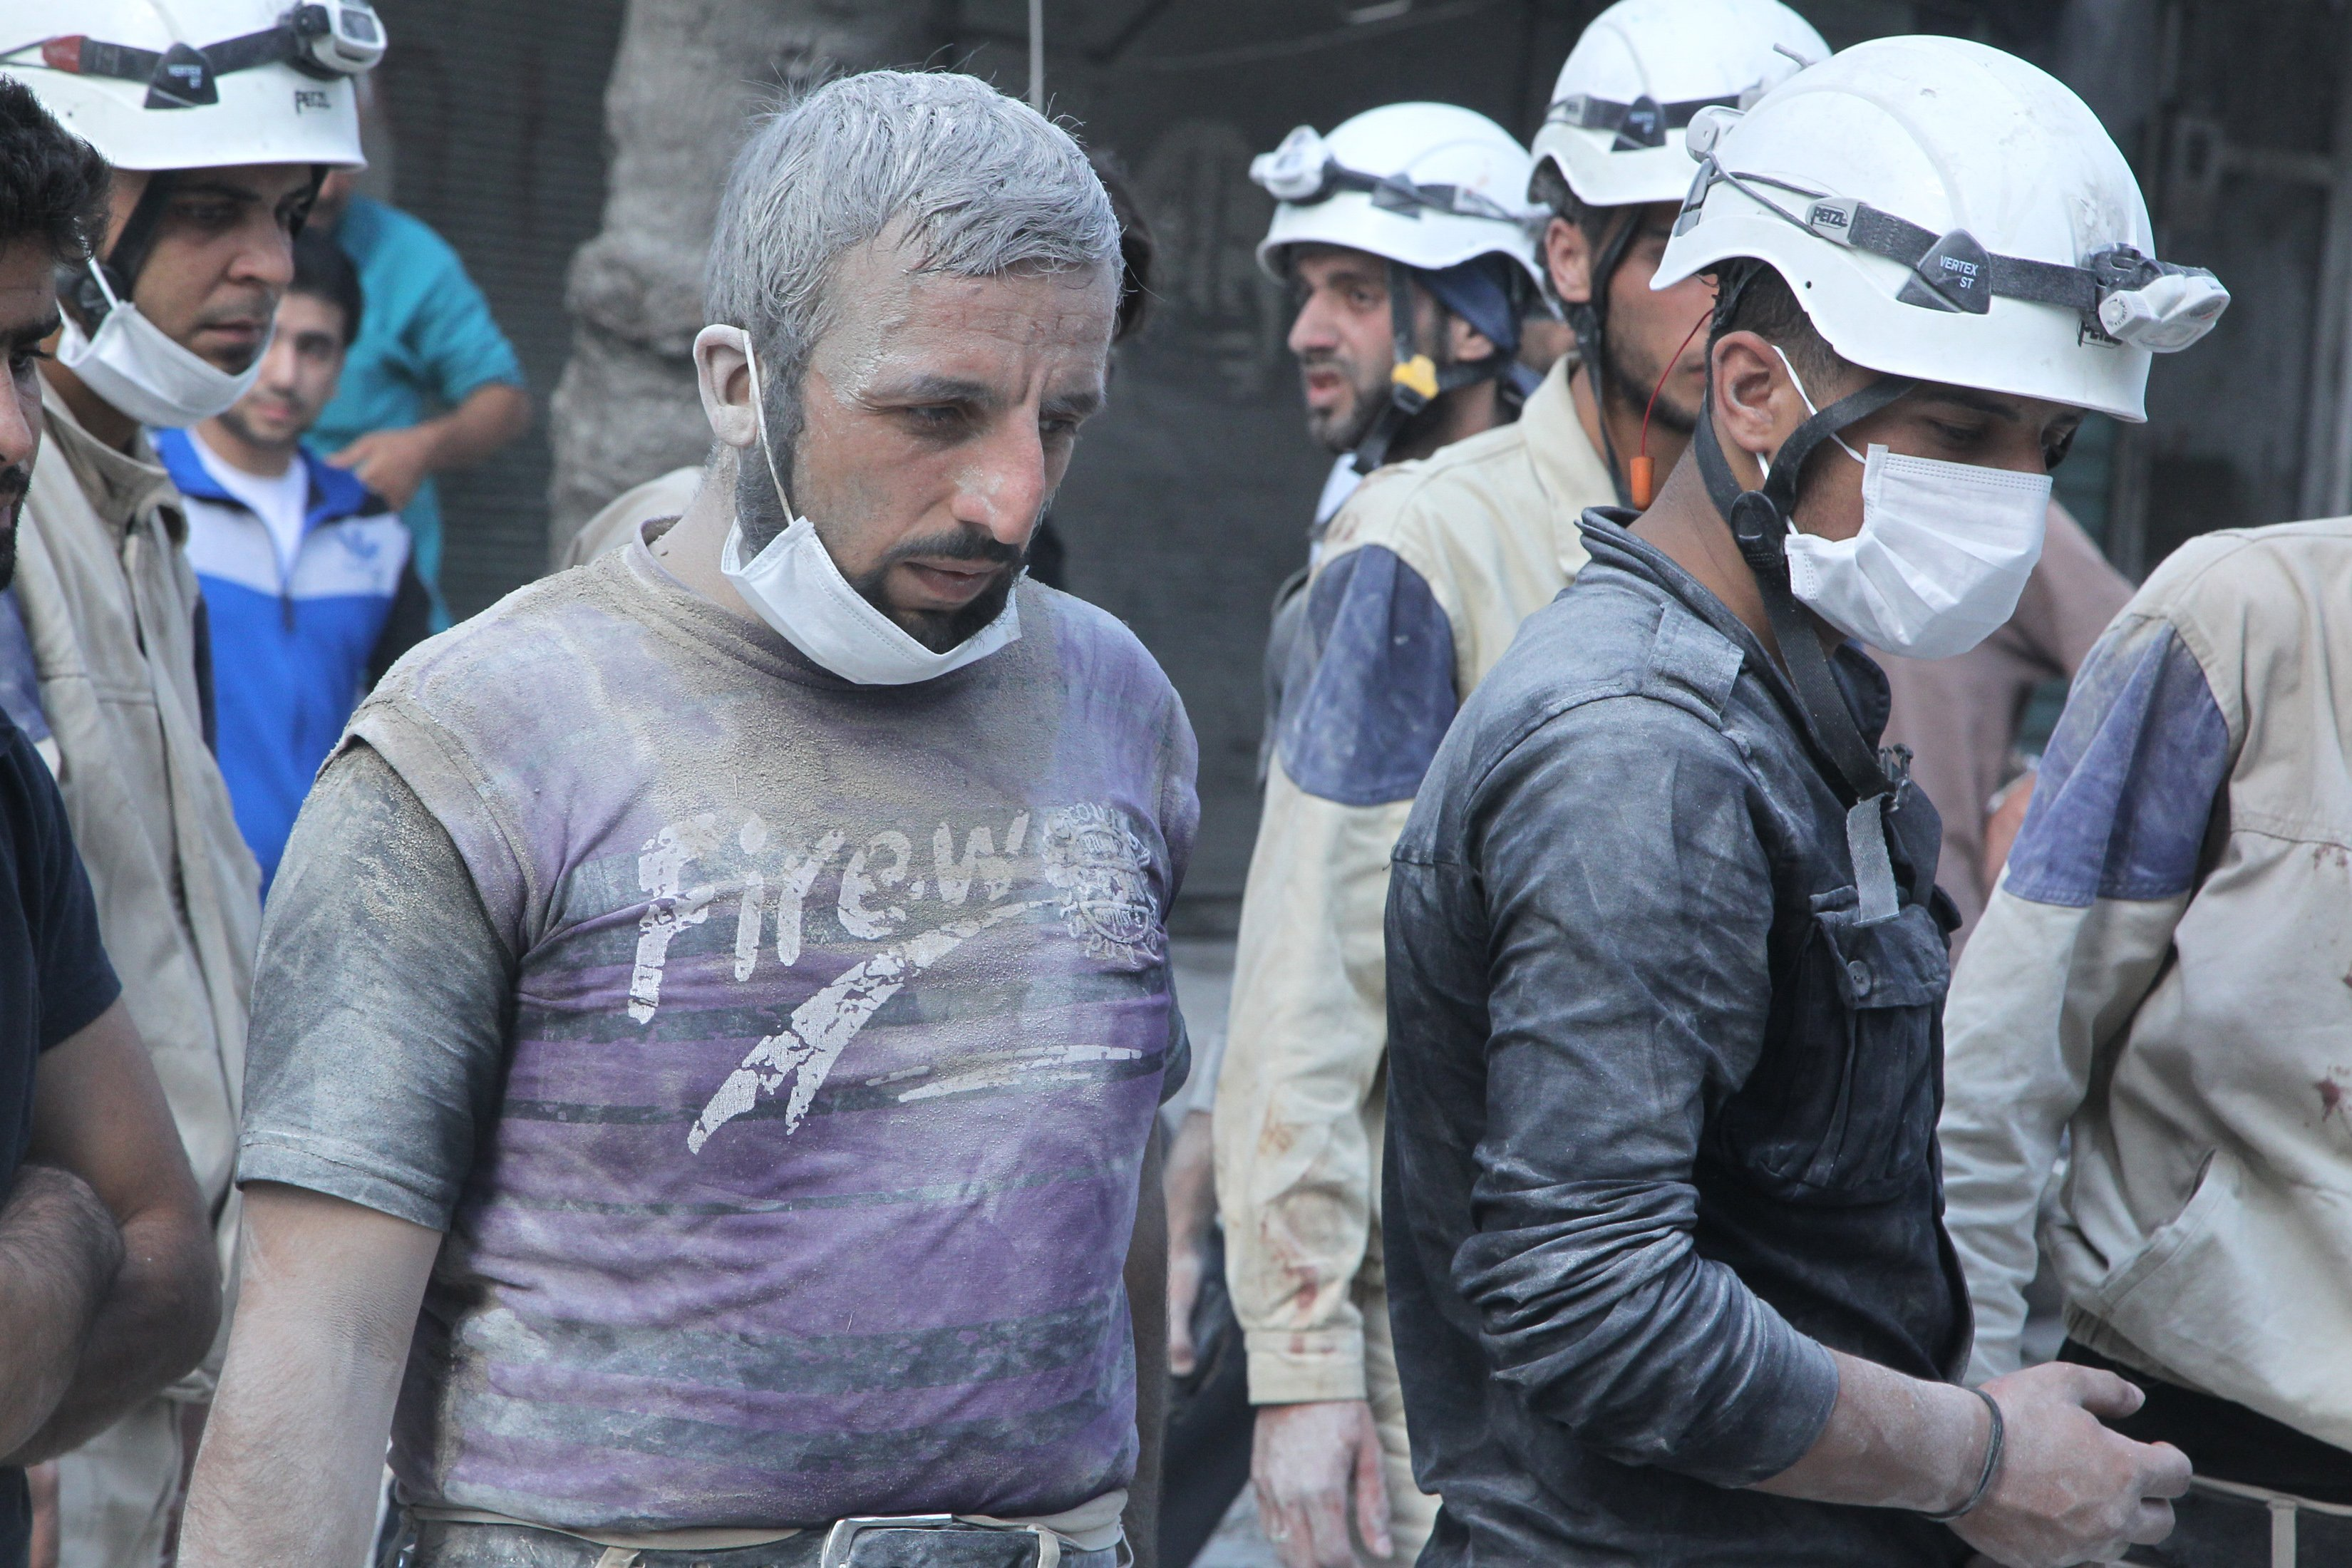 Elements of Syria Civil Defense in Syria (Reuters)